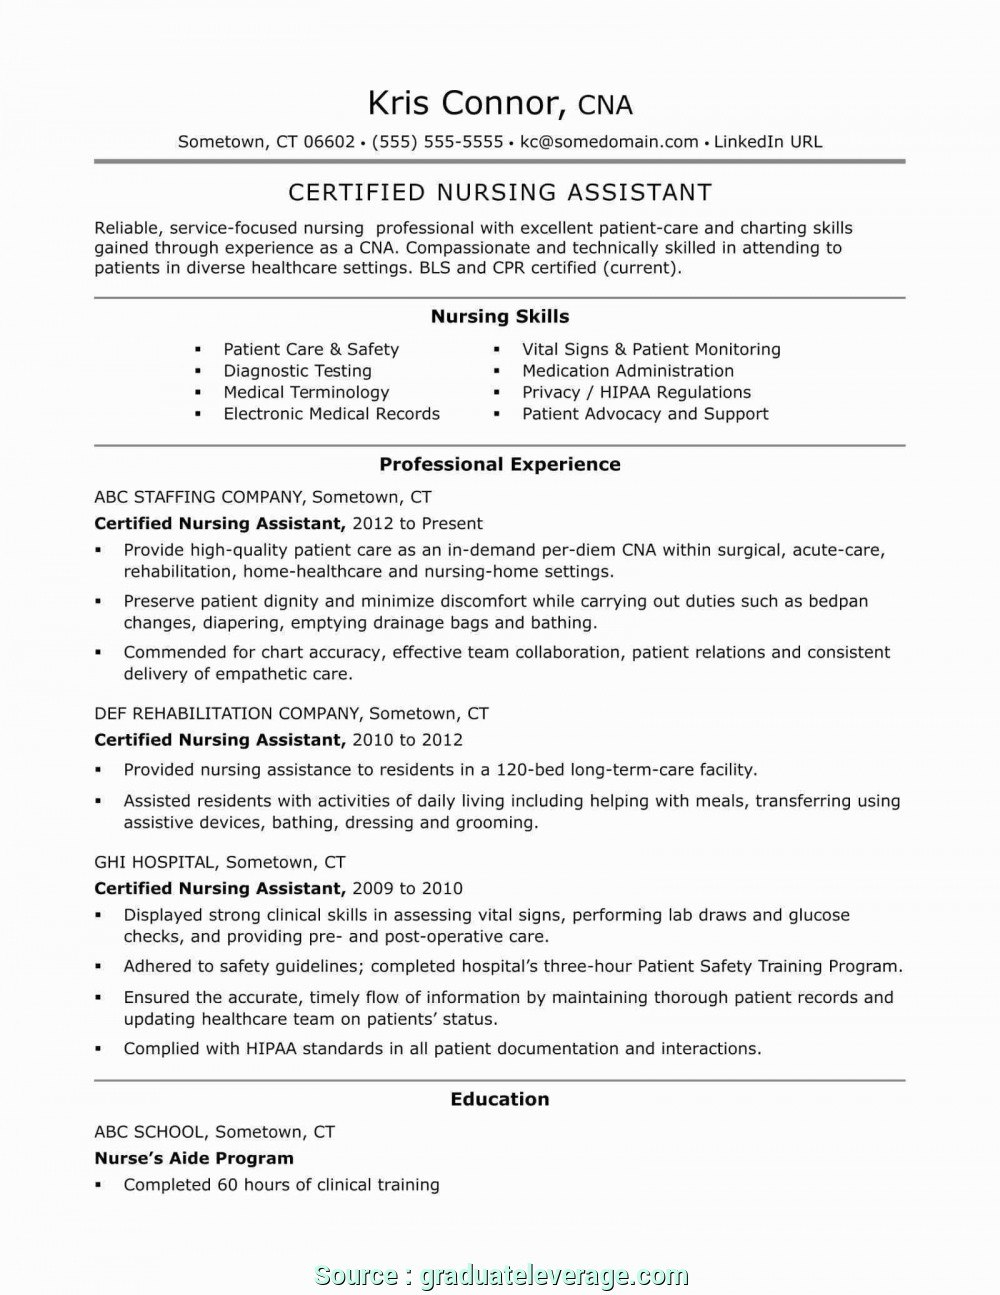 Professional Medical Business Plan Template Free Galleries Tiger Regarding Food Delivery Business Plan Template